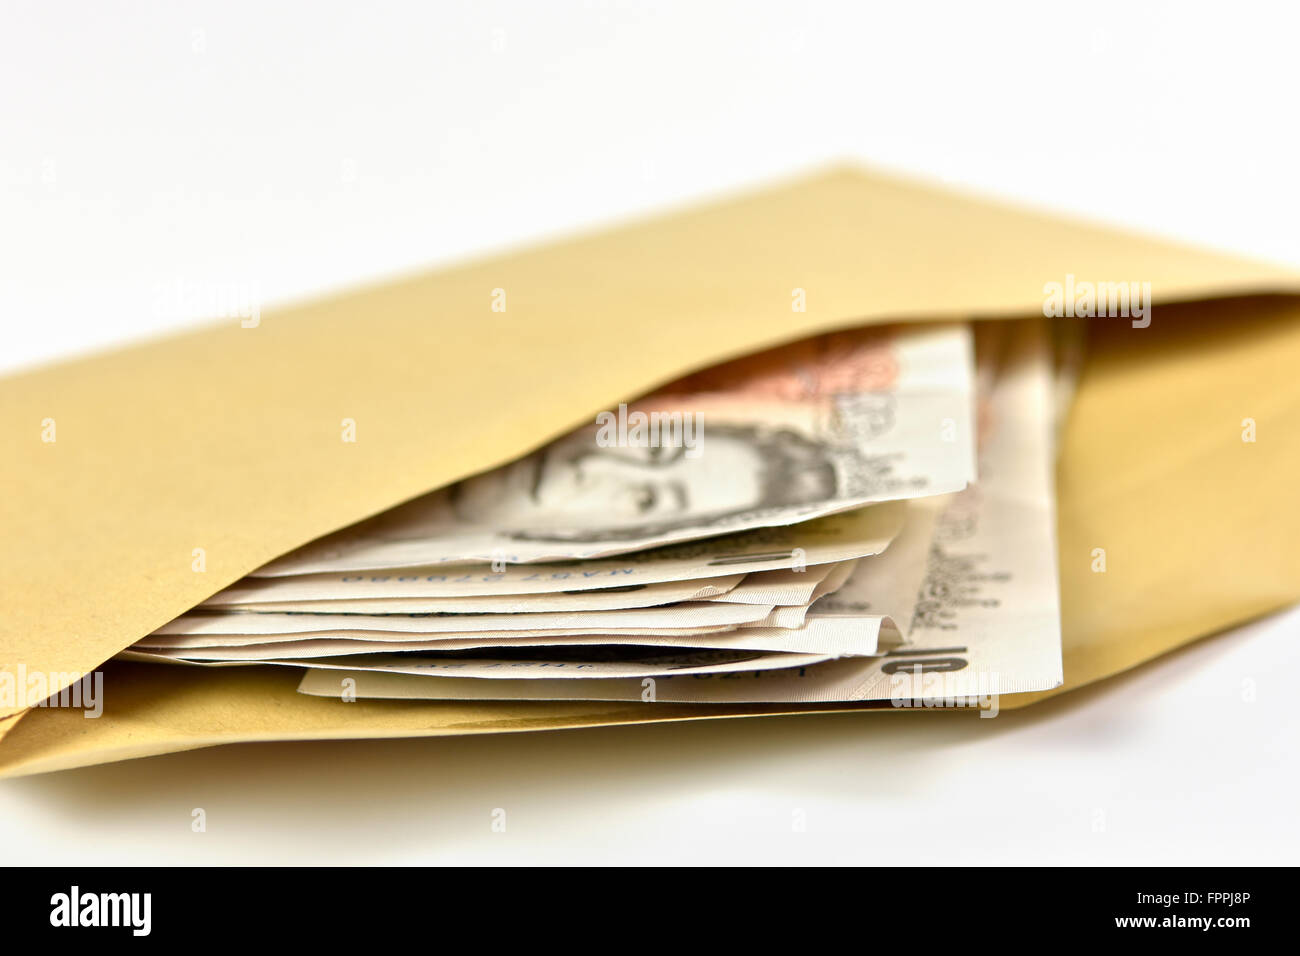 Wad of bank notes in British Sterling currency in brown envelope, mainly £10 notes - Stock Image